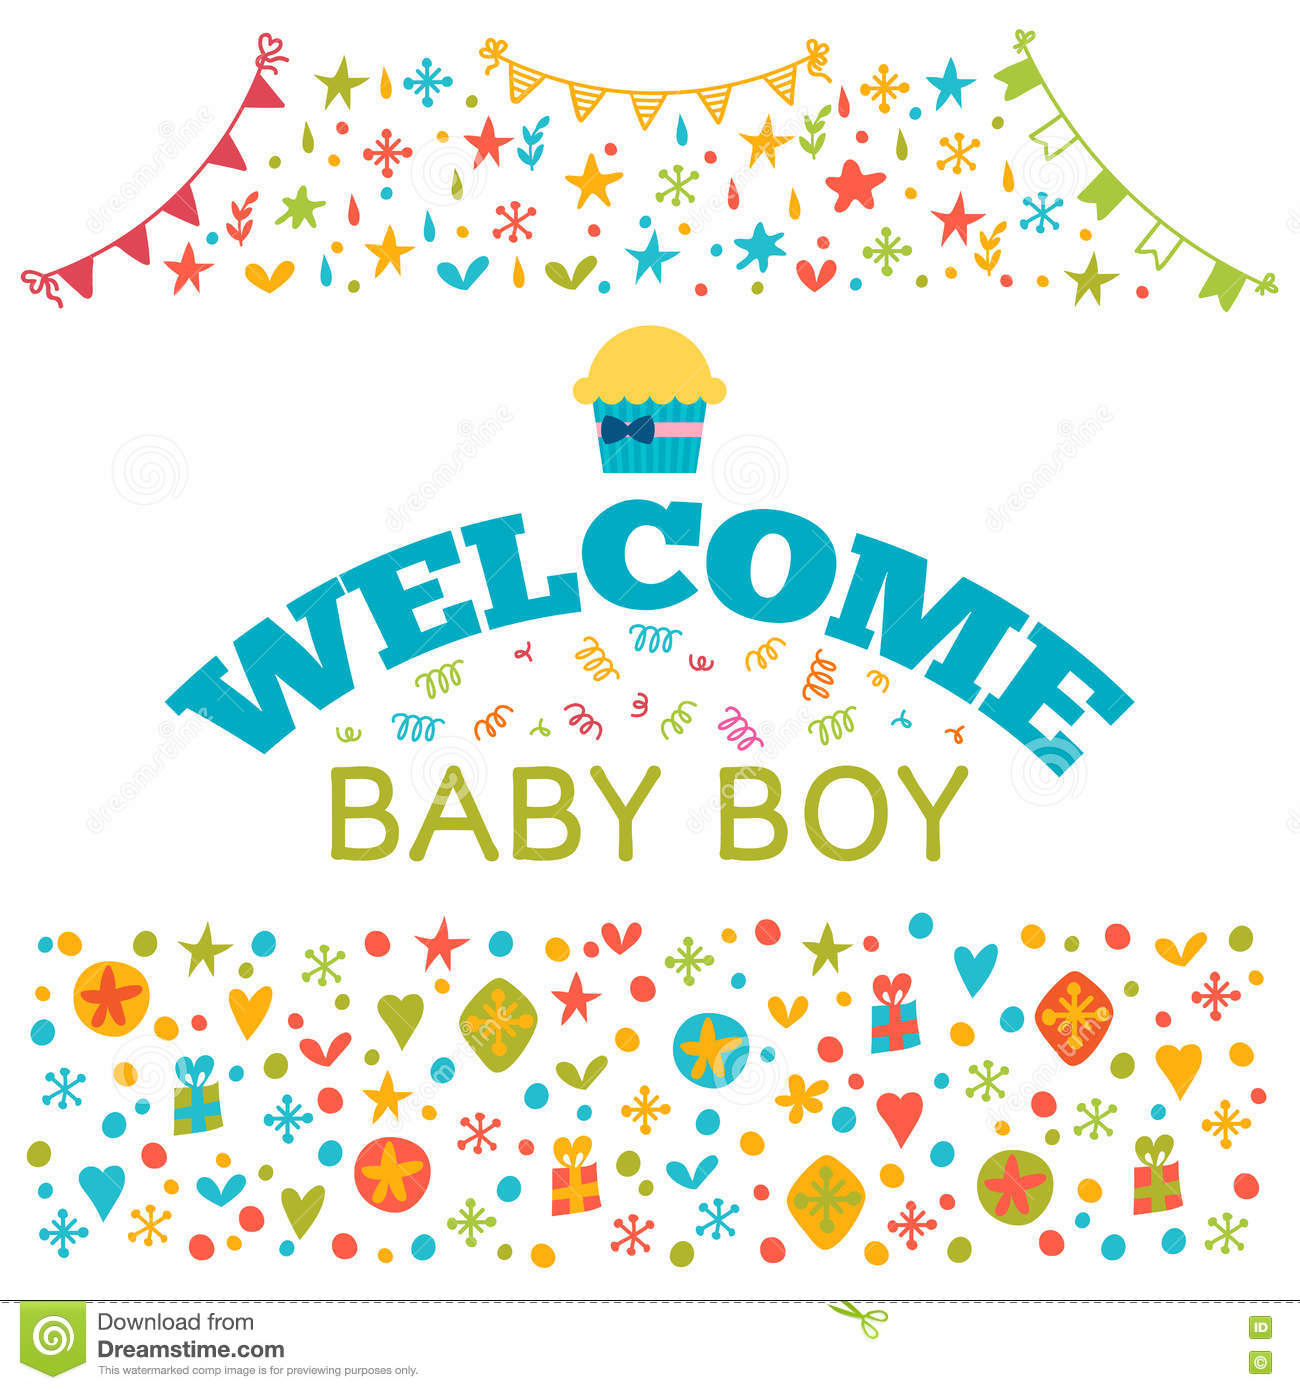 Full Size of Baby Shower:49+ Prime Baby Shower Card Message Photo Concepts Baby Boy Shower Favors With Cheap Baby Shower Gifts Plus Baby Shower Locations Together With Baby Shower Cupcake Cakes